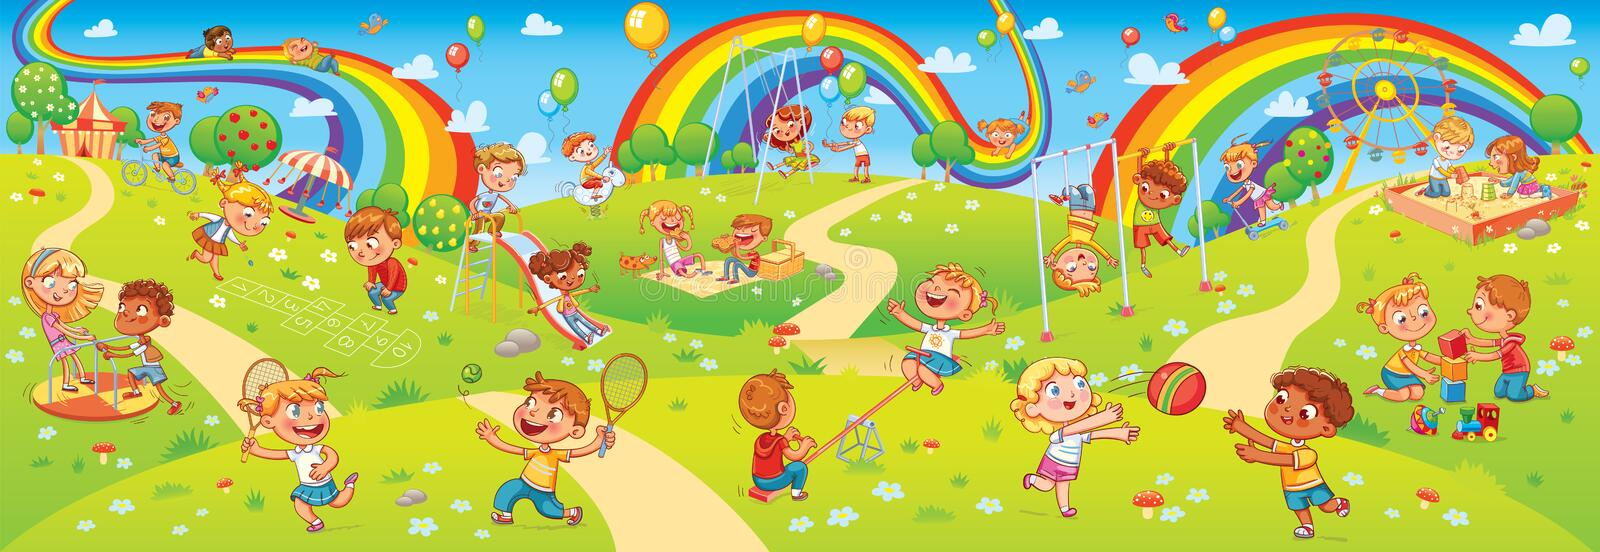 Children playing in playground. Seamless children`s panorama for your design. Children`s entertainment complex with swing, sandbox, carousel and slides in stock illustration